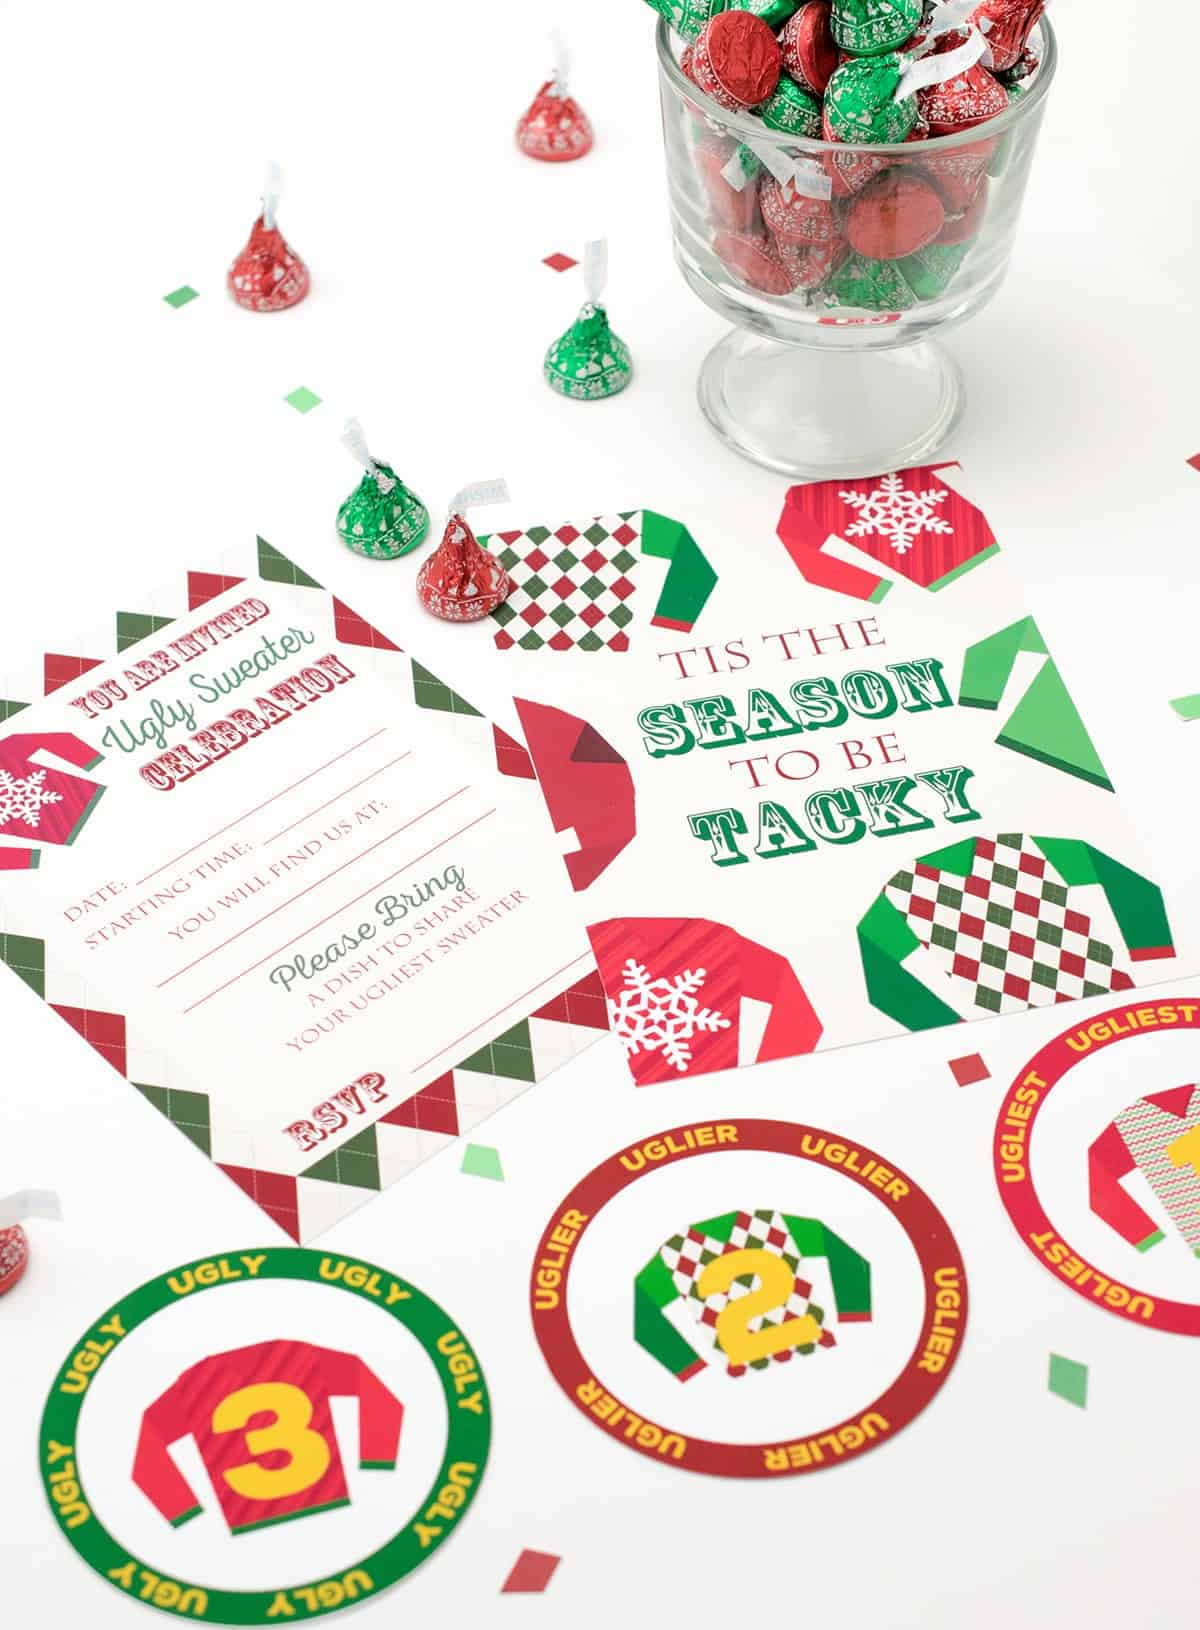 free-printable-invitations-ugly-sweater-party